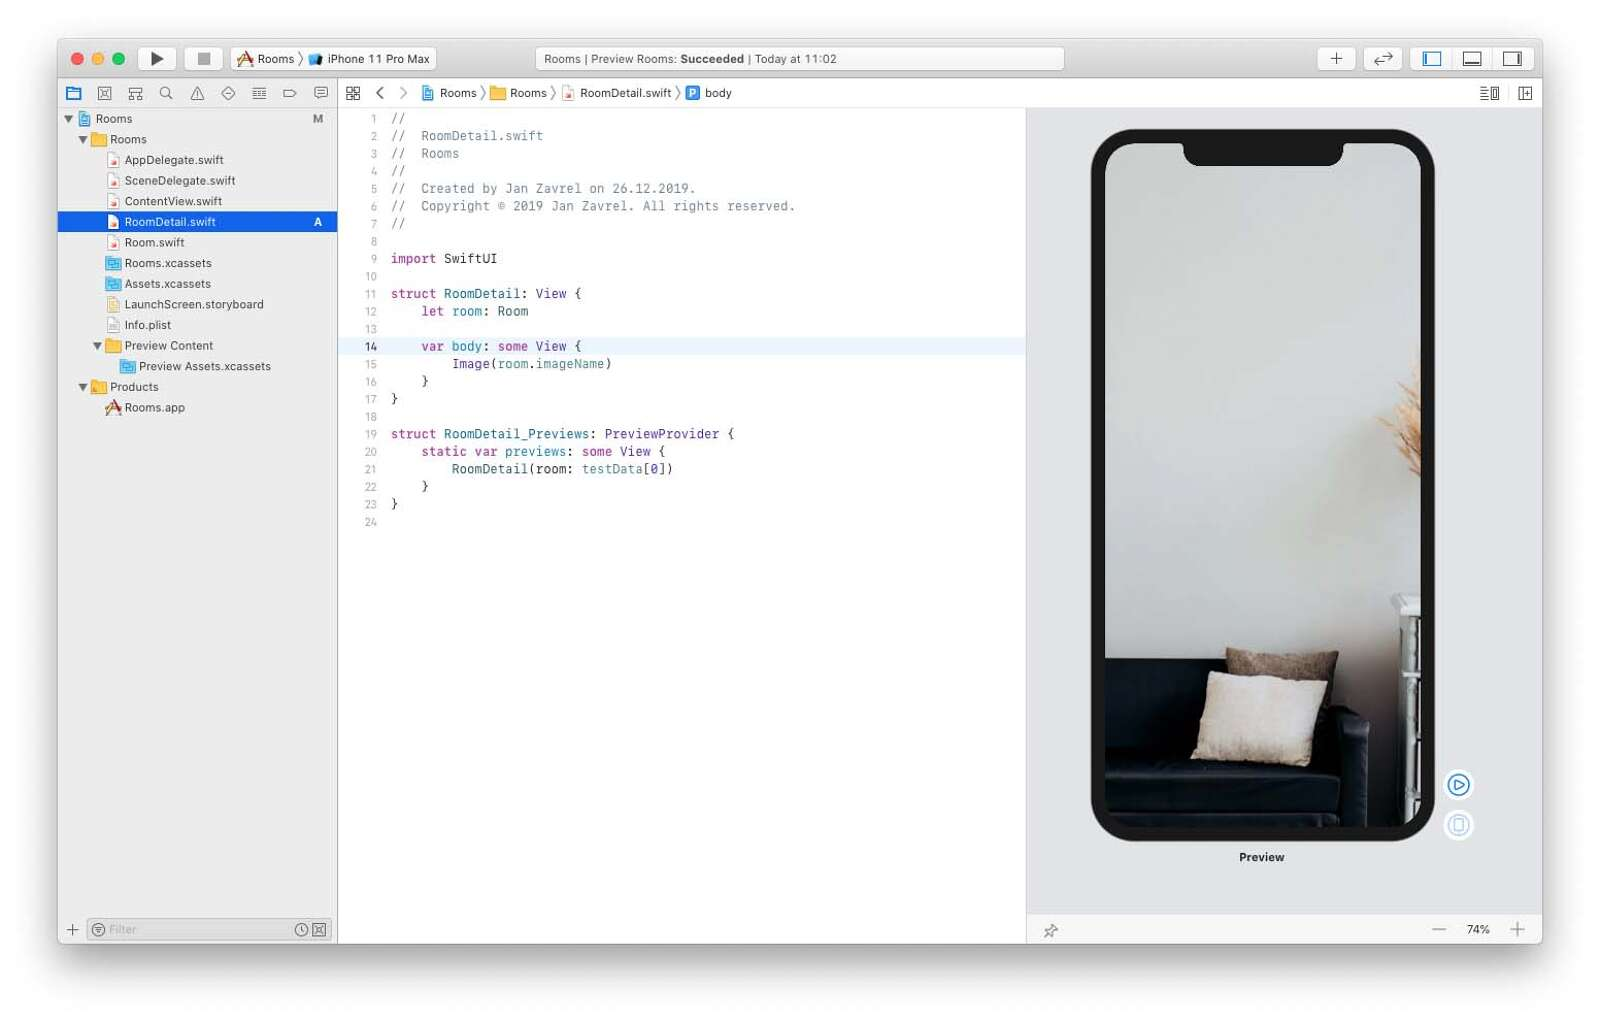 https://res.cloudinary.com/codewithjan/image/upload/v1578453688/swiftui-by-examples/swiftui-by-examples-38.jpg